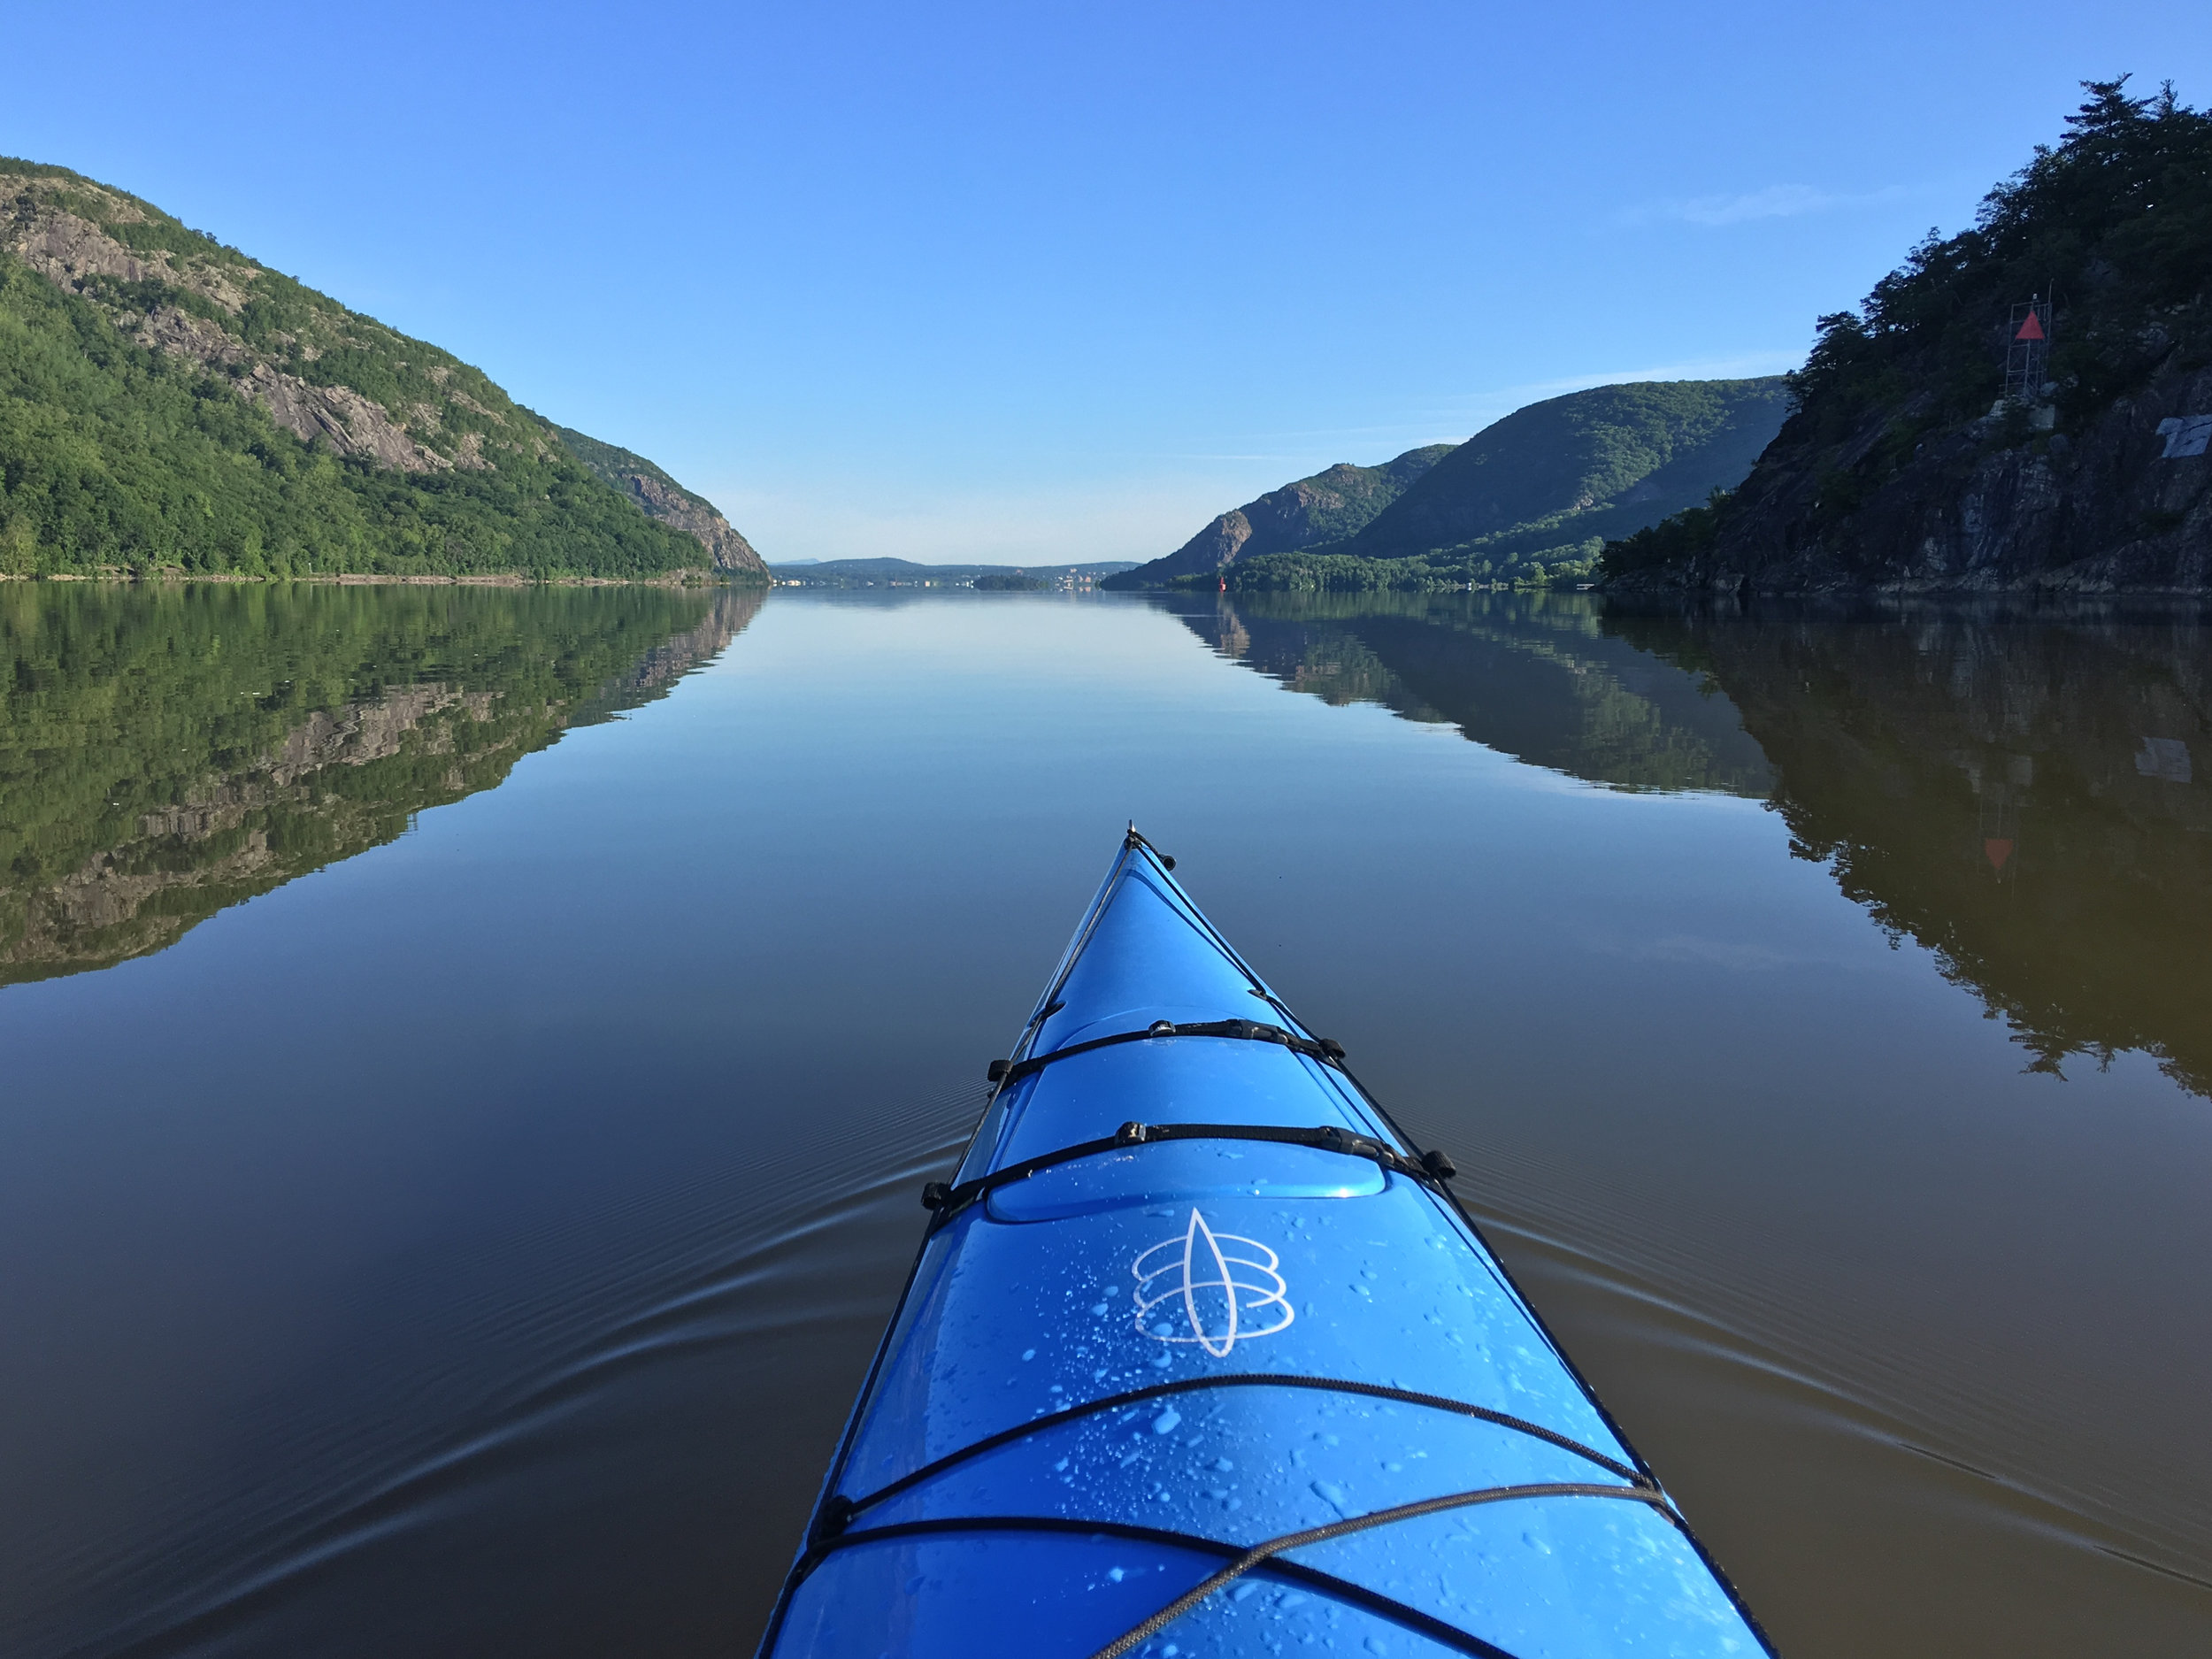 Hudson River on a Calm Day